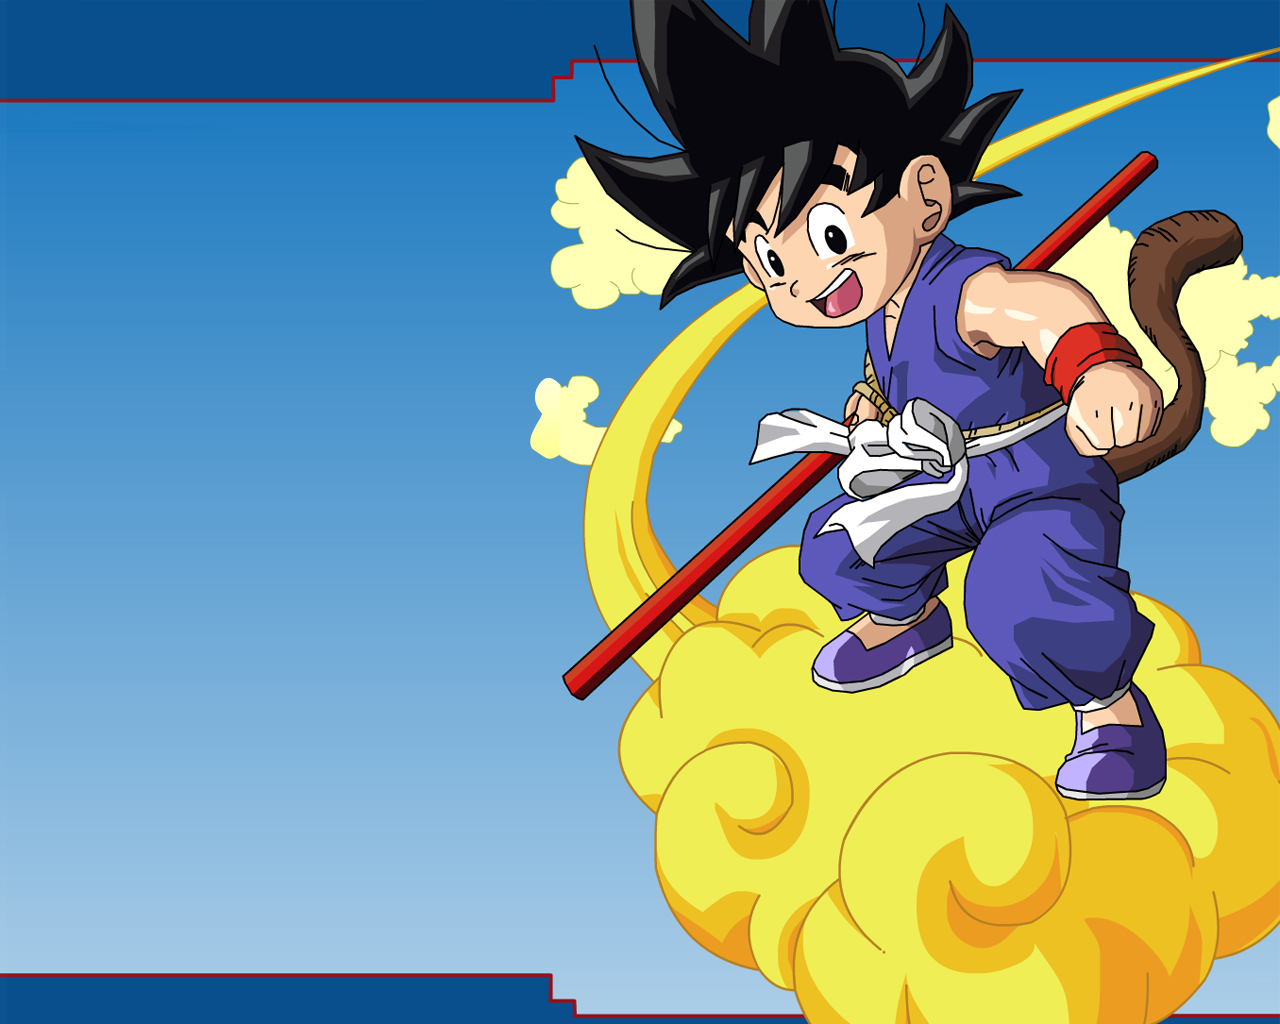 Dragon Ball HD & Widescreen Wallpaper 0.05696404054724